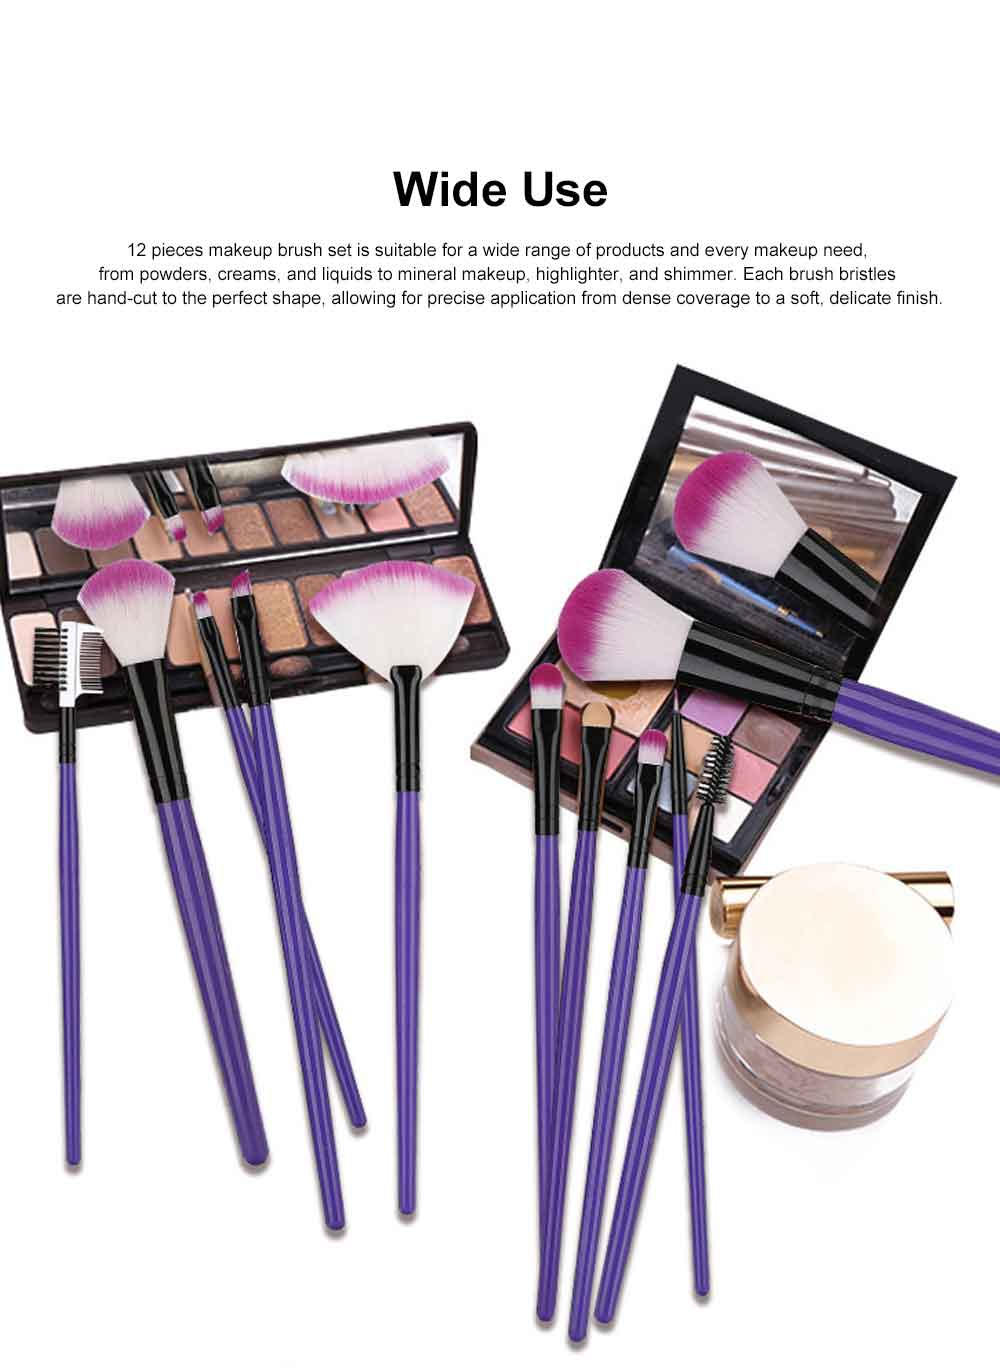 12PCS Makeup Brushes Set Makeup Brushes for Eye-shadow Concealer Eyeliner Brow Blending Brush Cosmetic Tool 5